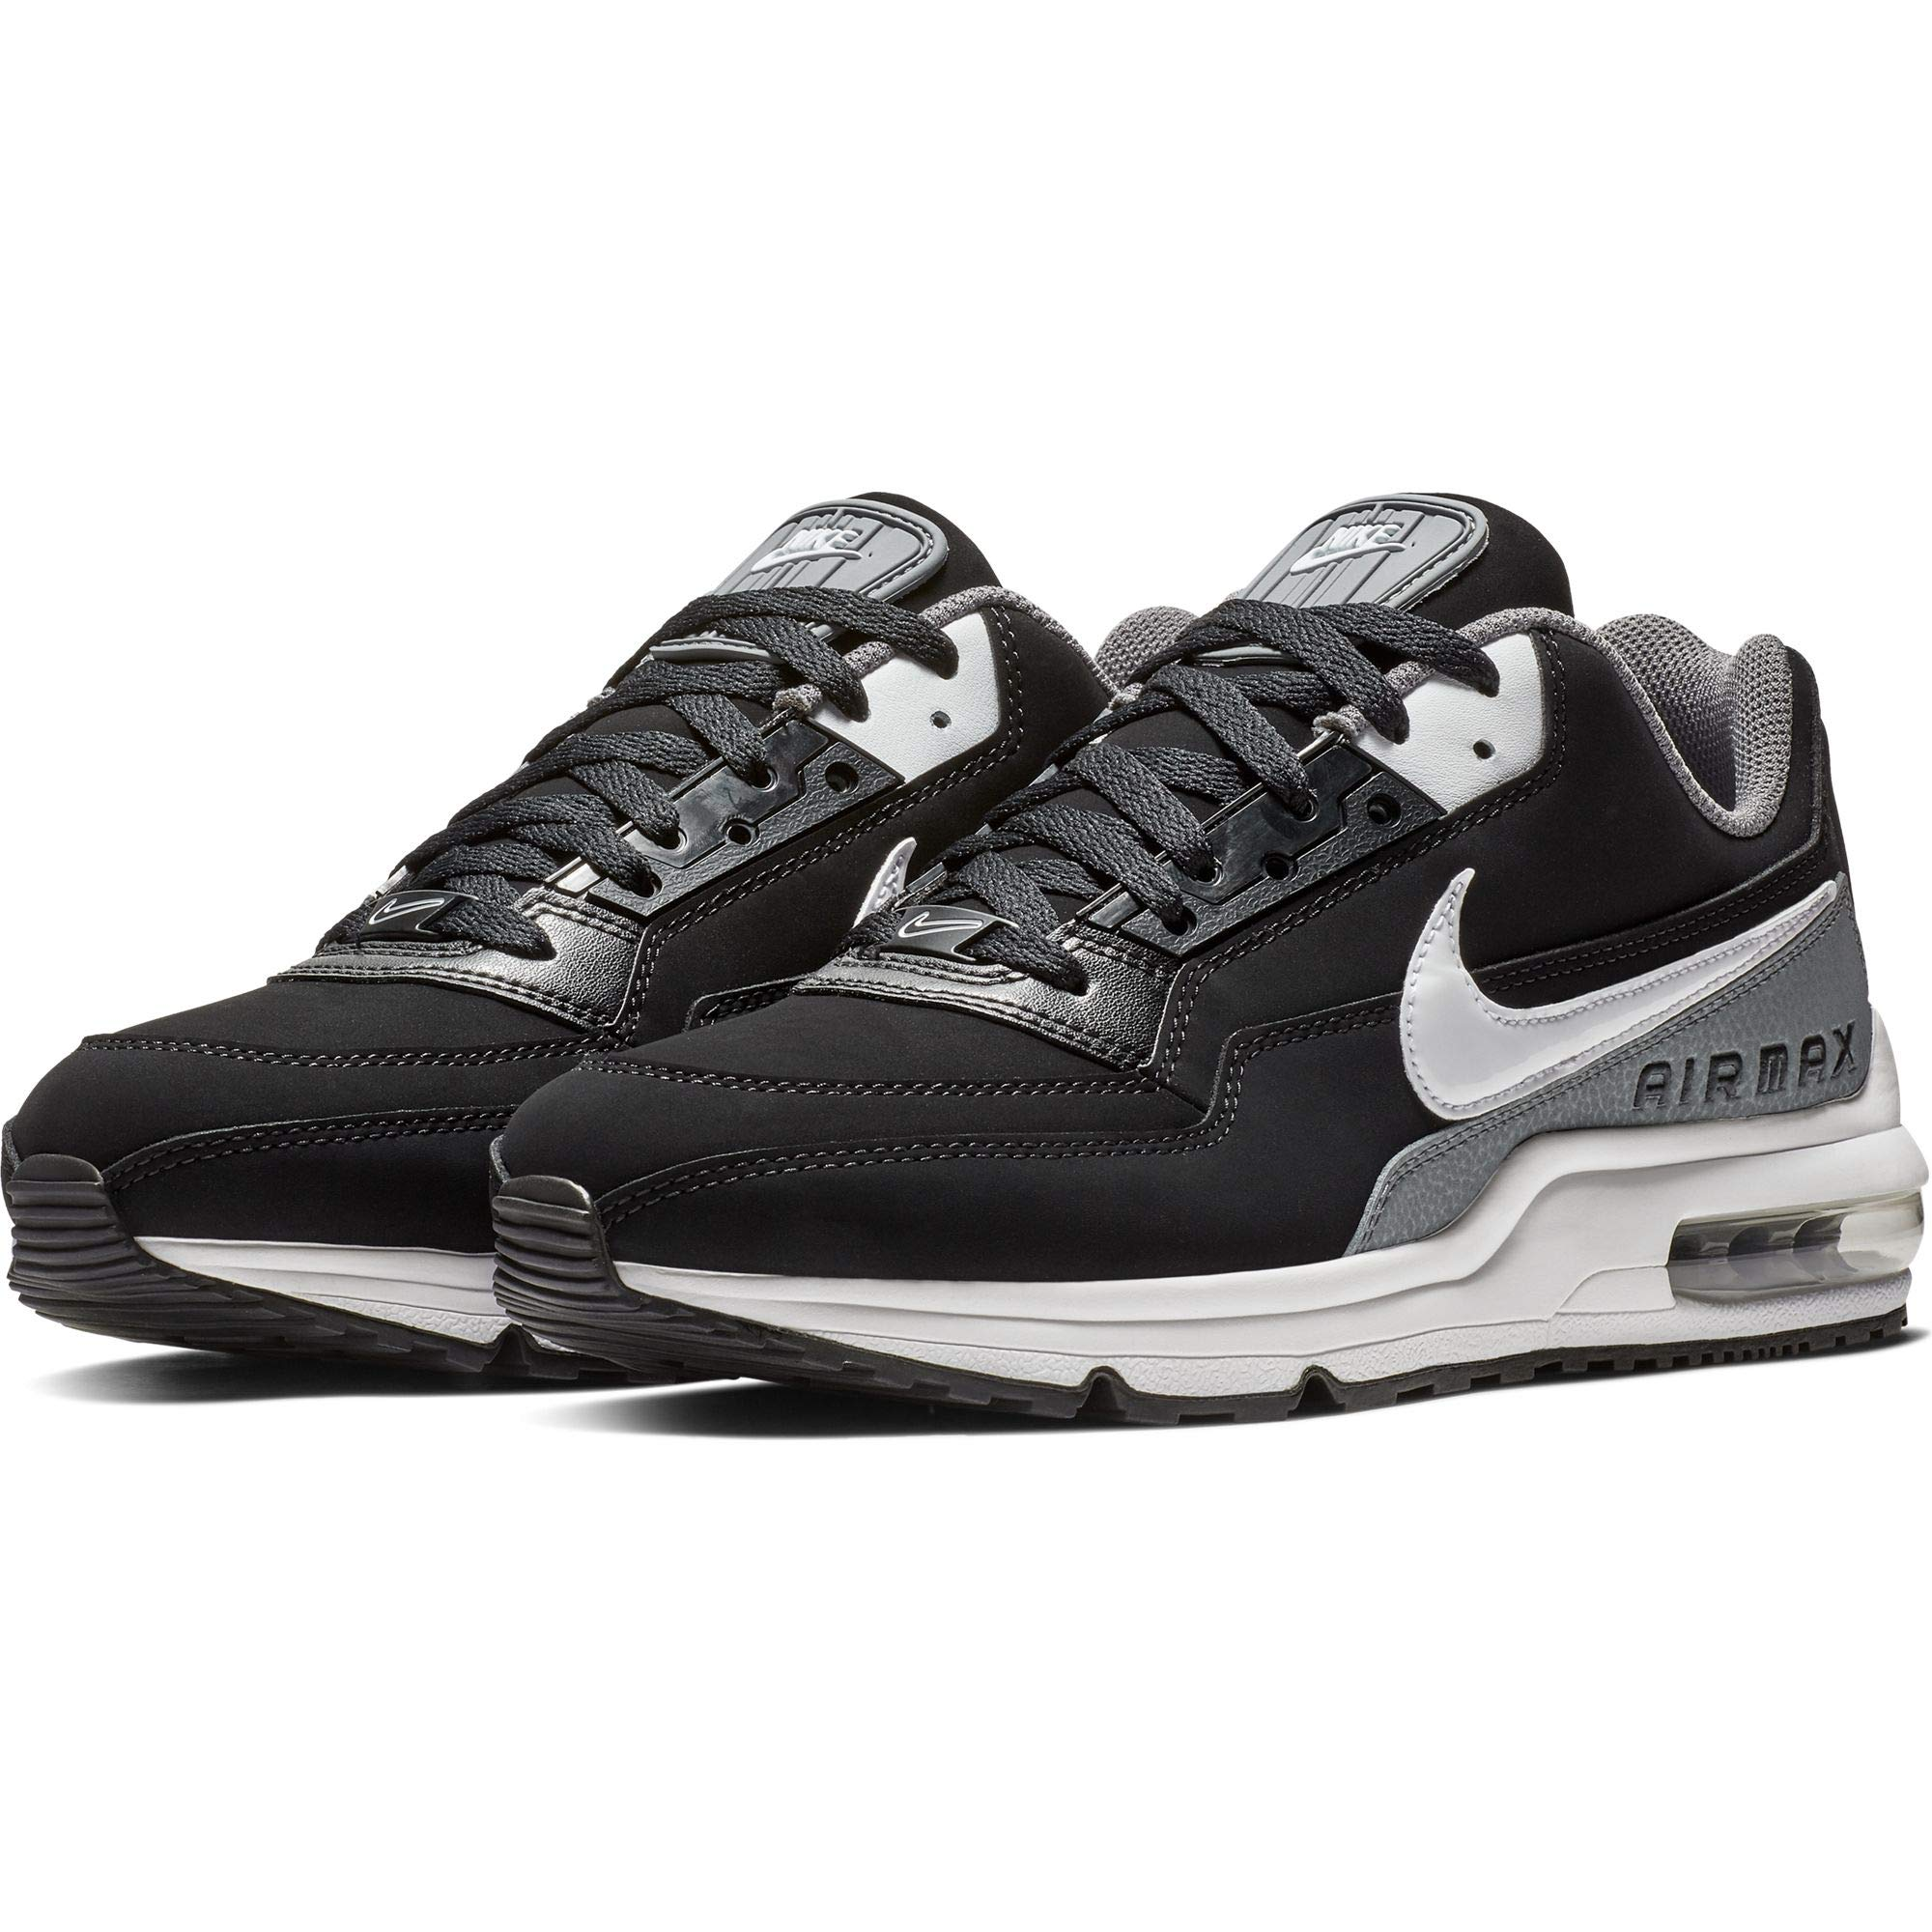 new concept c46d0 82058 Galleon - Nike Air Max LTD 3 Men s Shoes Black Dark Grey White Bv1171-001  (10 D(M) US)